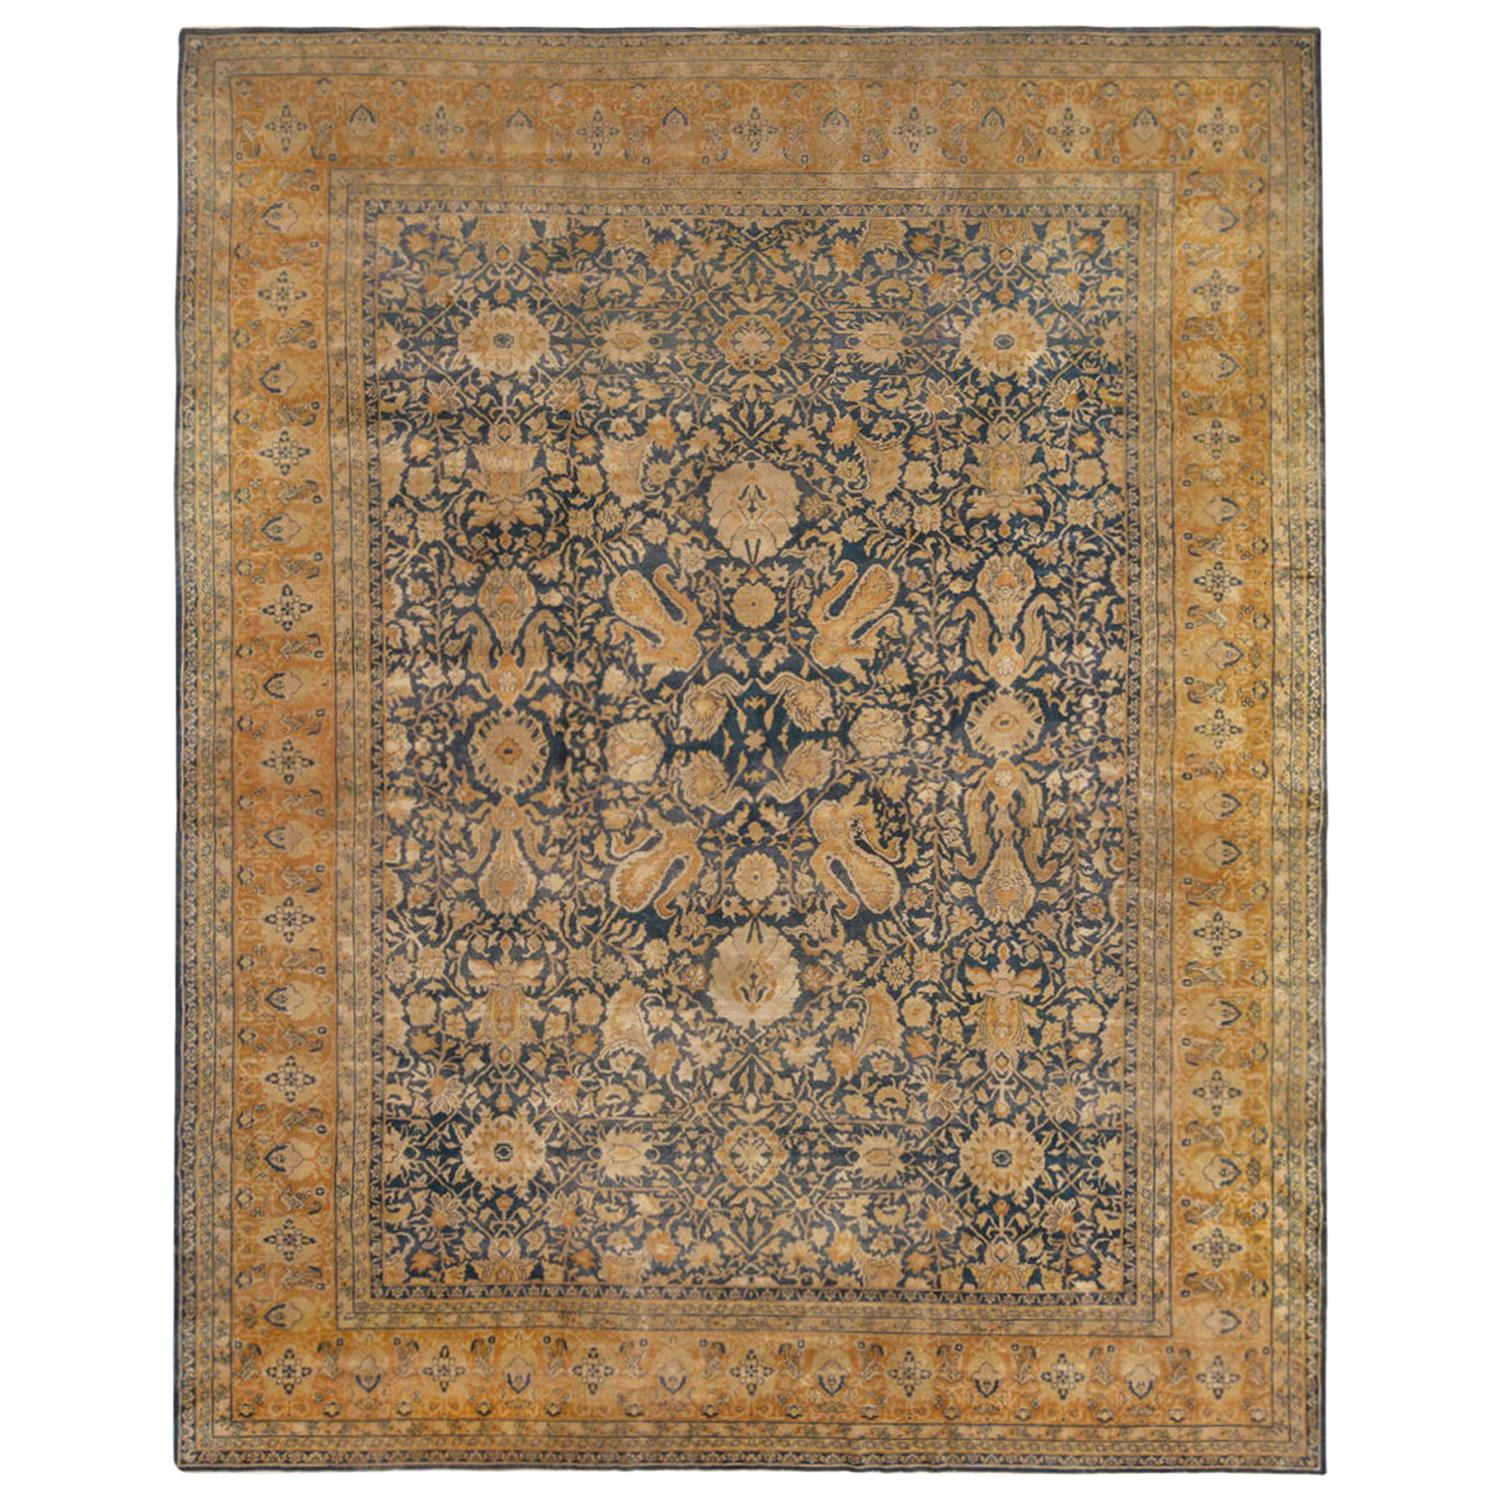 Antique Sultanabad Navy Blue and Gold Wool Persian Rug Floral Pattern